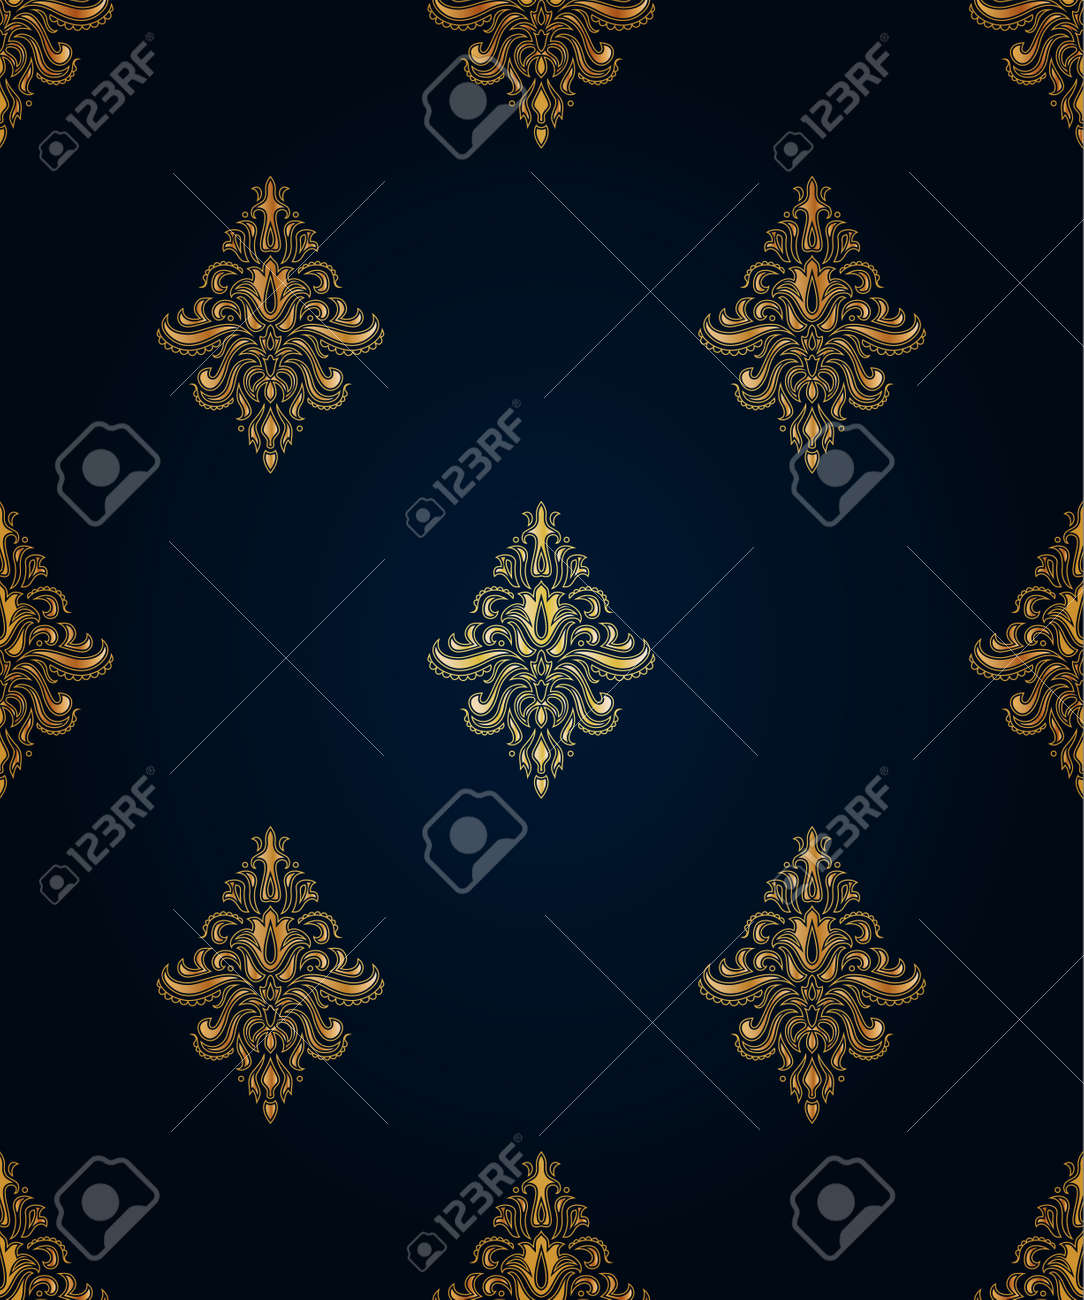 Gold seamless classic pattern with floral ornament on the blue background Stock Vector - 11387593